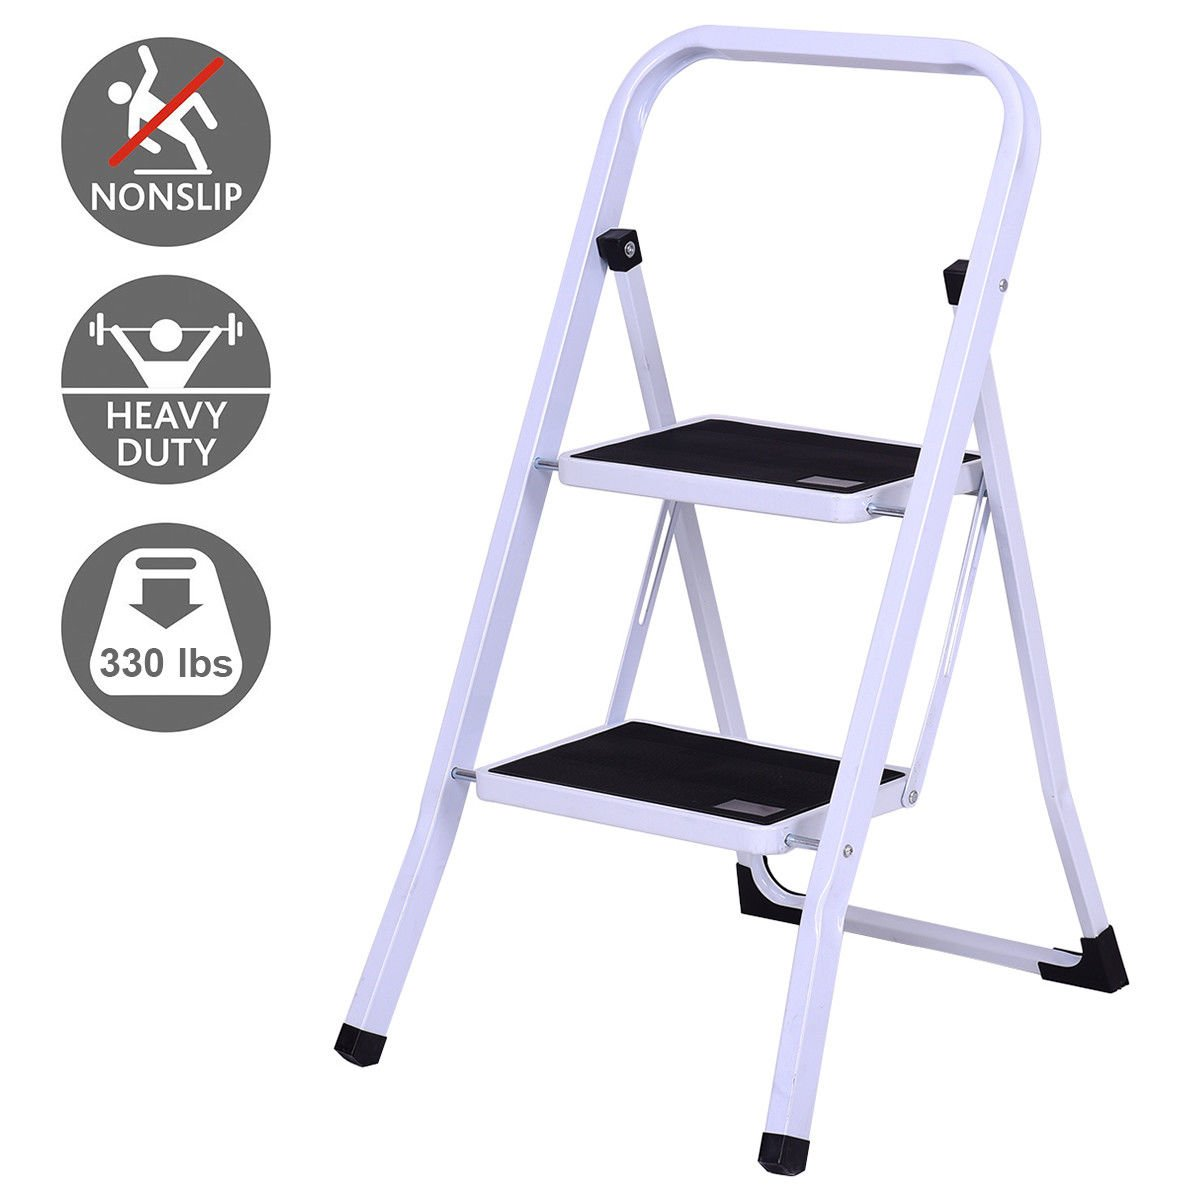 Giantex 2 Step Ladder Folding Steel Step Stool Steel Stepladders with Anti-Slip Heavy Duty with 330Lbs Capacity